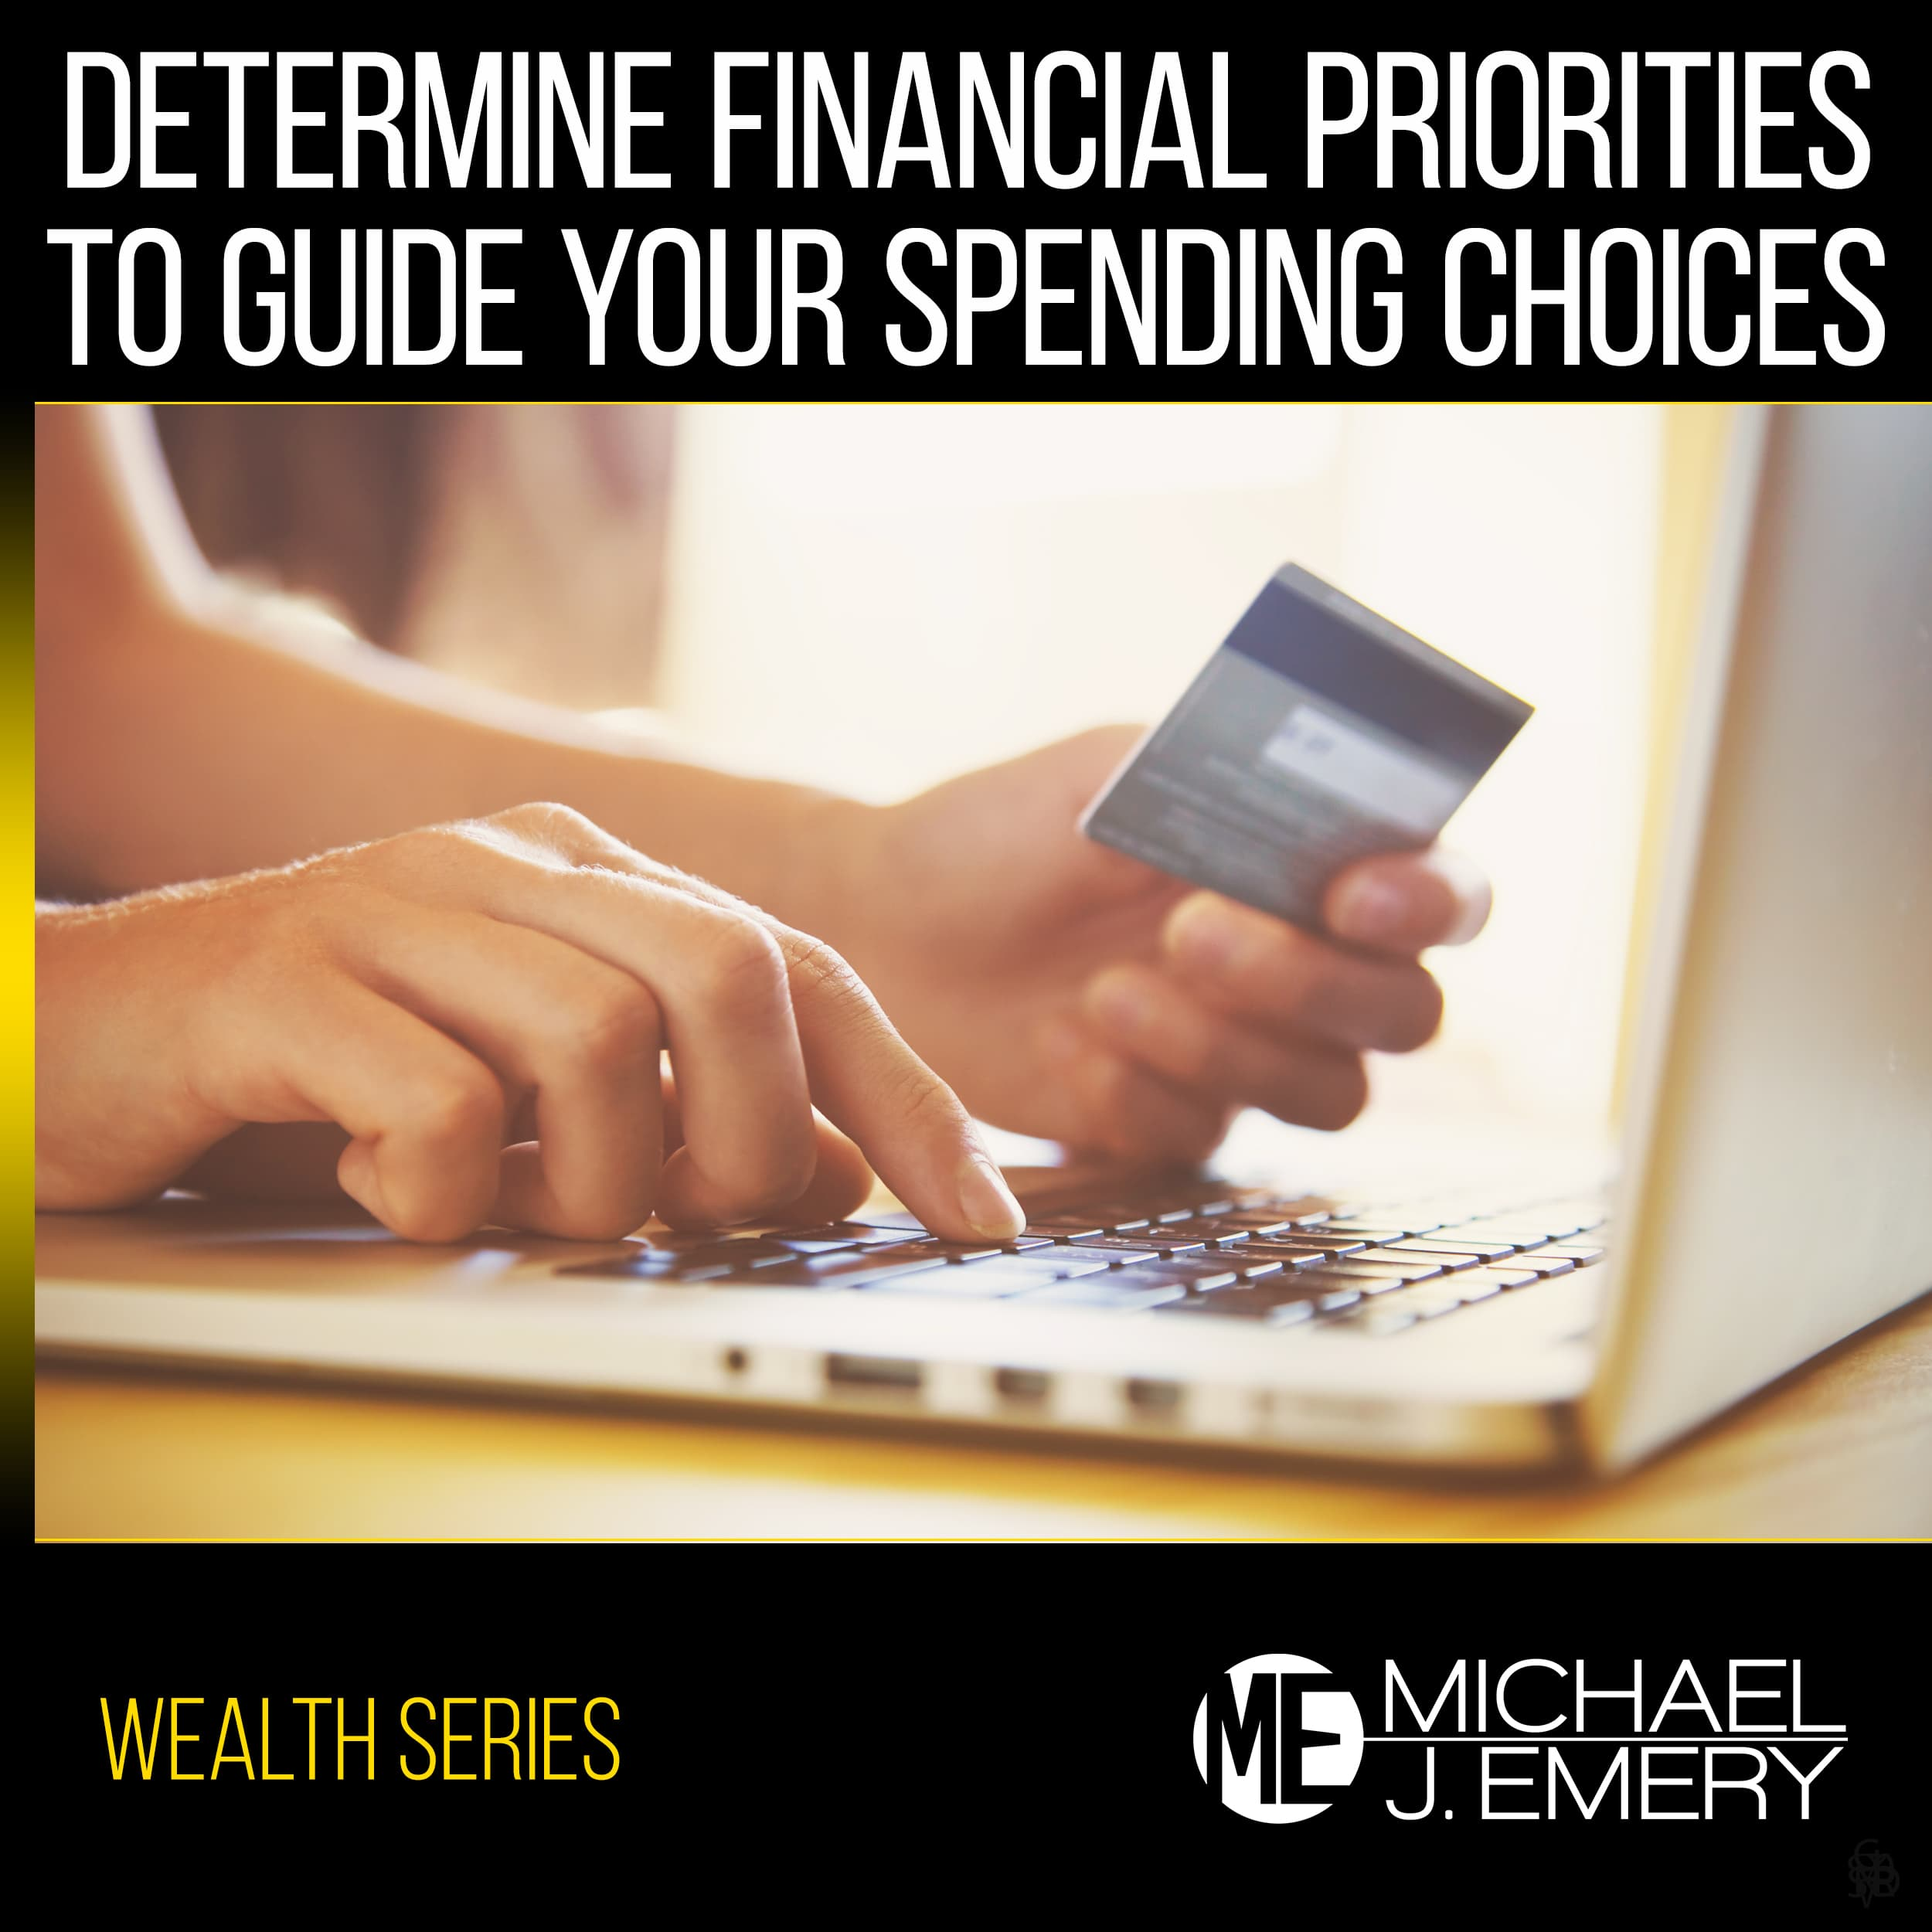 Determine-Financial-Priorities-to-Guide--Your-Spending-Choices